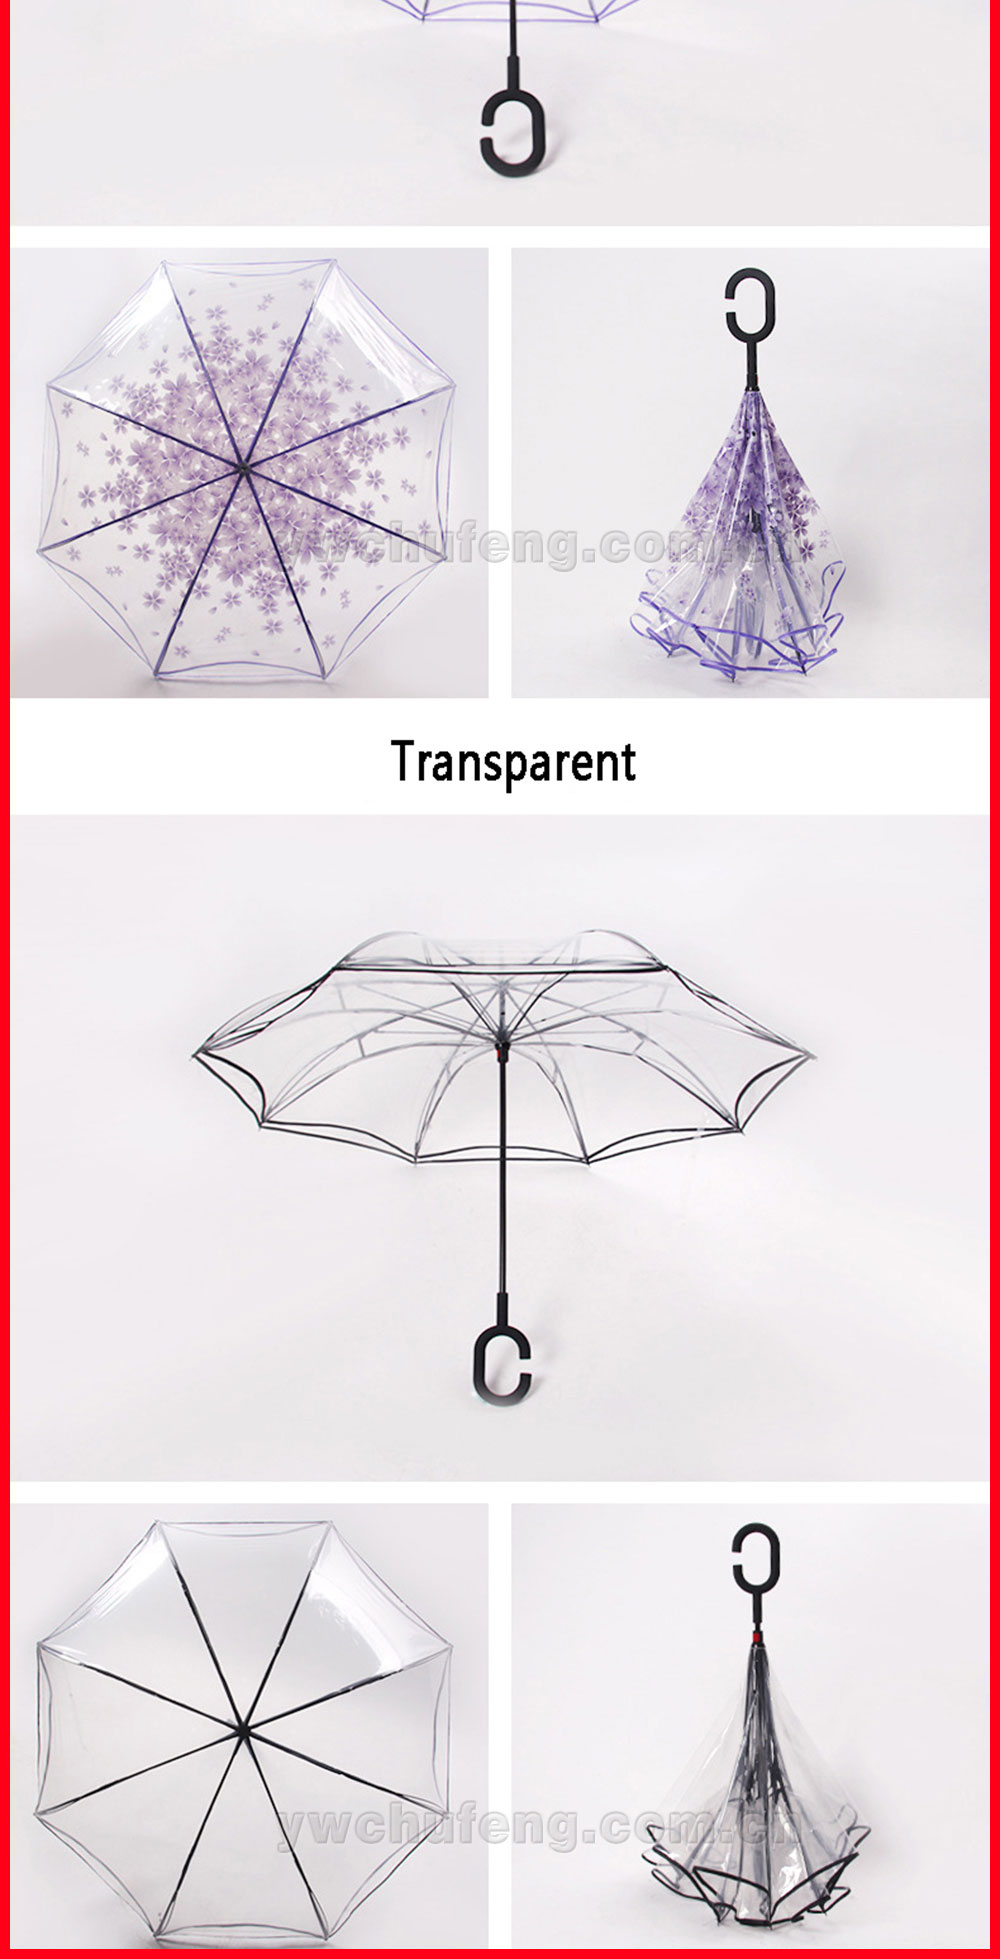 Magic Umbrella Inverted Upside Down Reverse Umbrella Transparent Sakura Parasol Flowers Pattern Umbrella